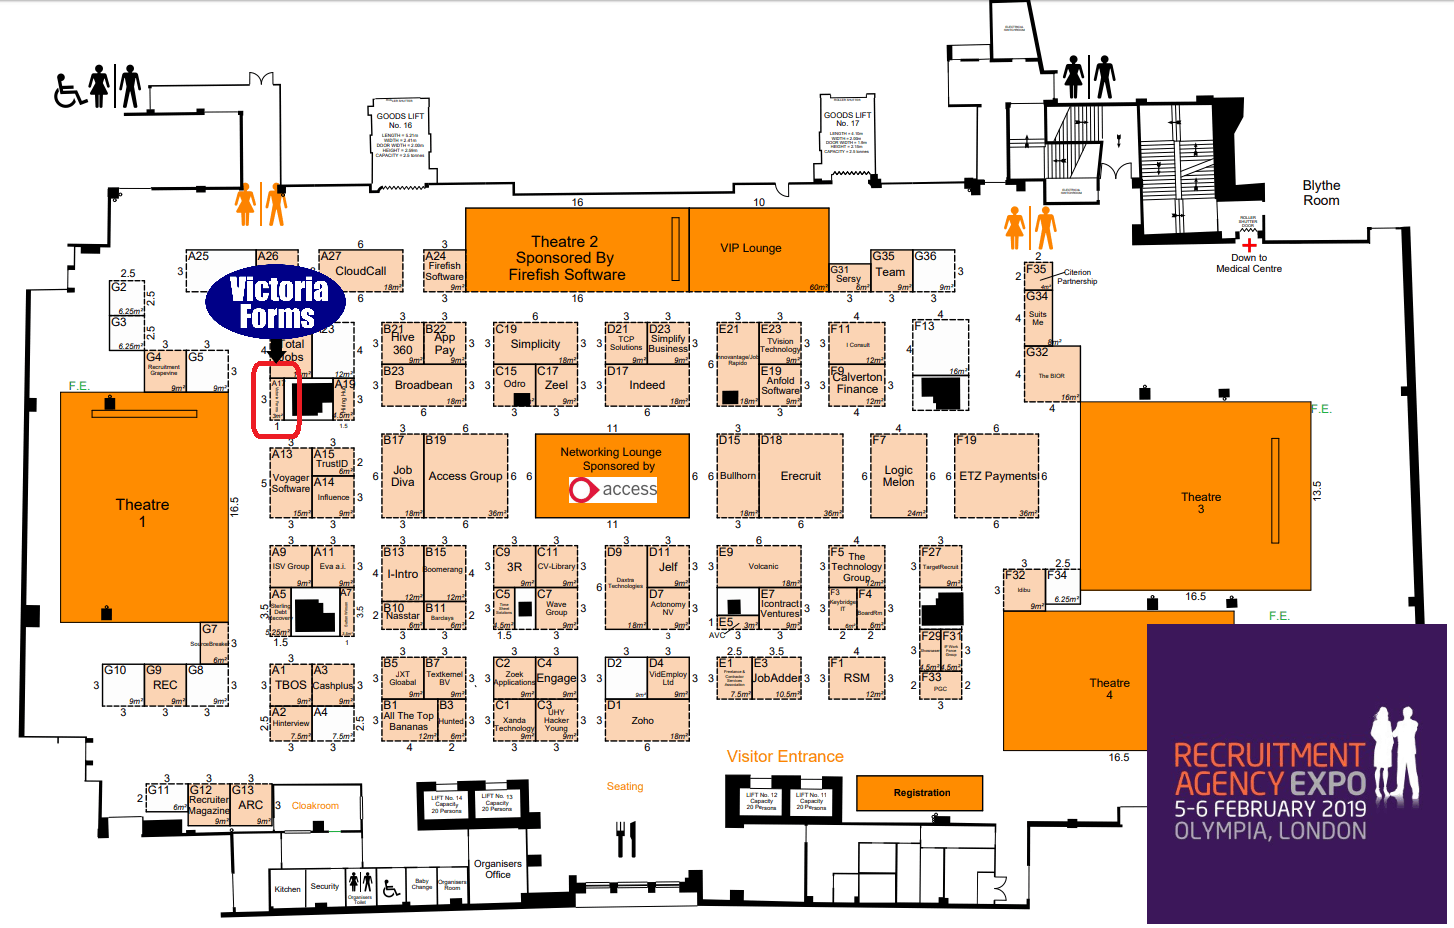 Recruitment Agency Expo map